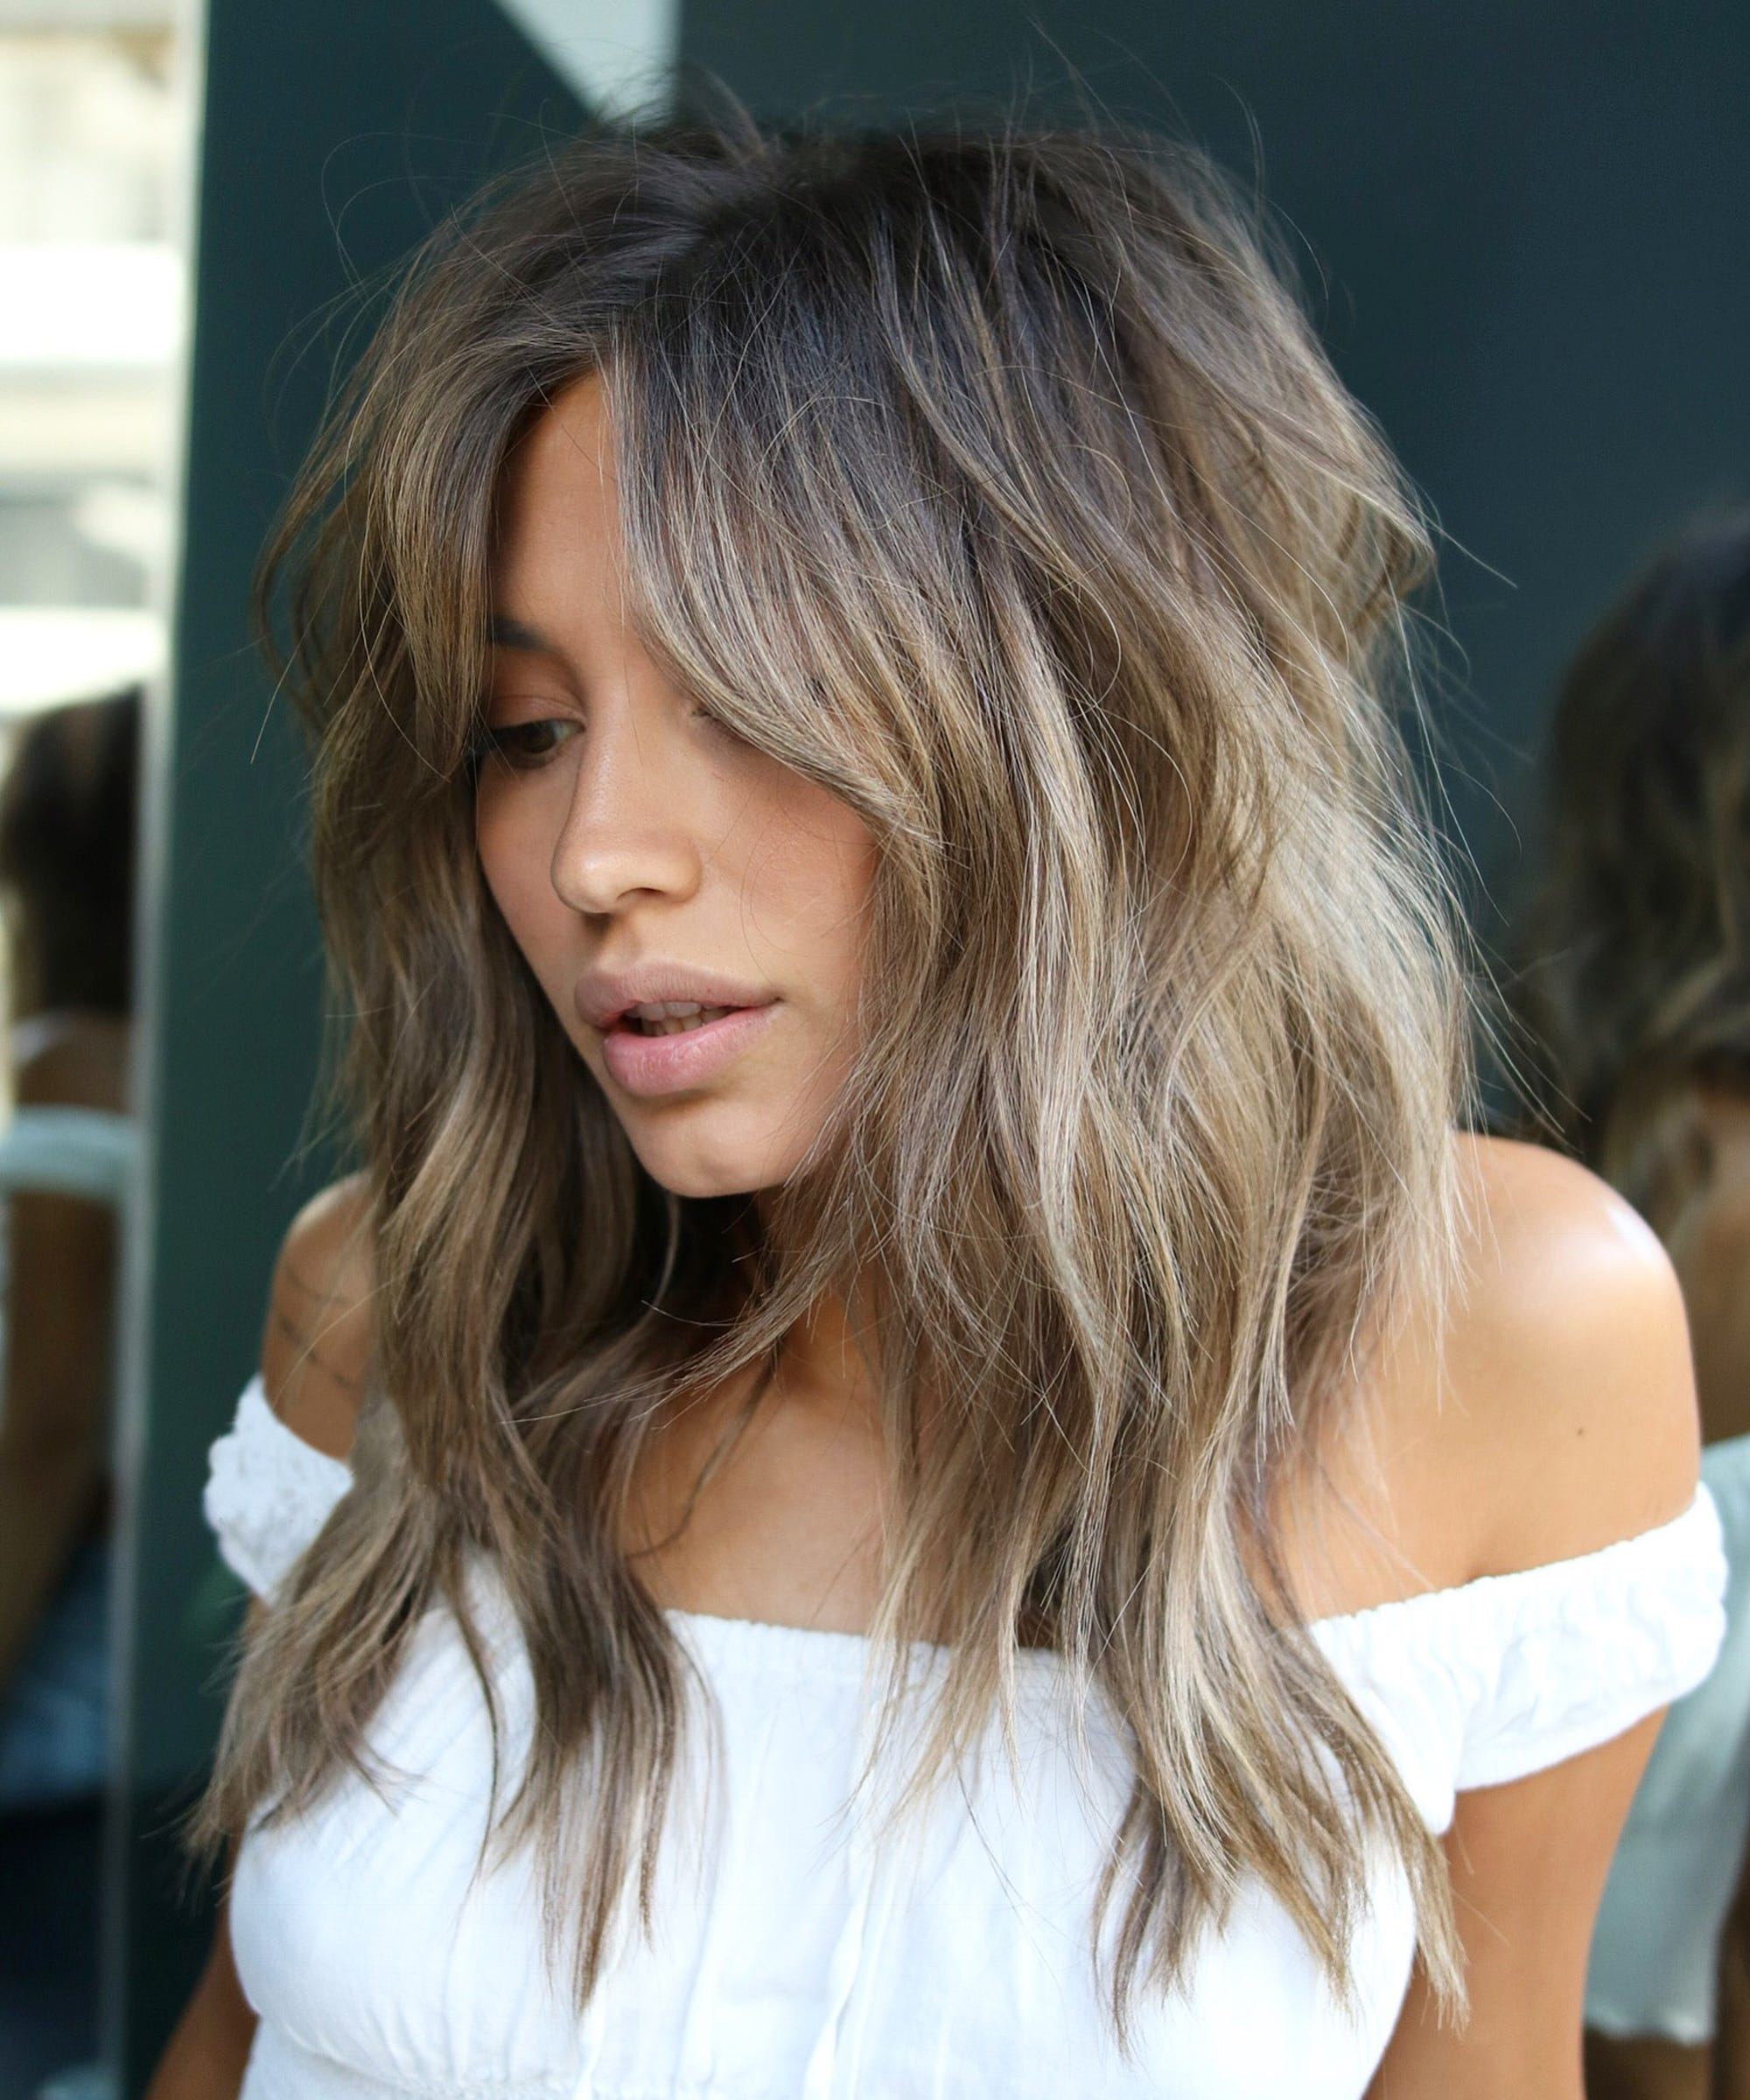 Color Trends Fall 2018 Fall Hair Color Trends Ideas For A New Look In 2018